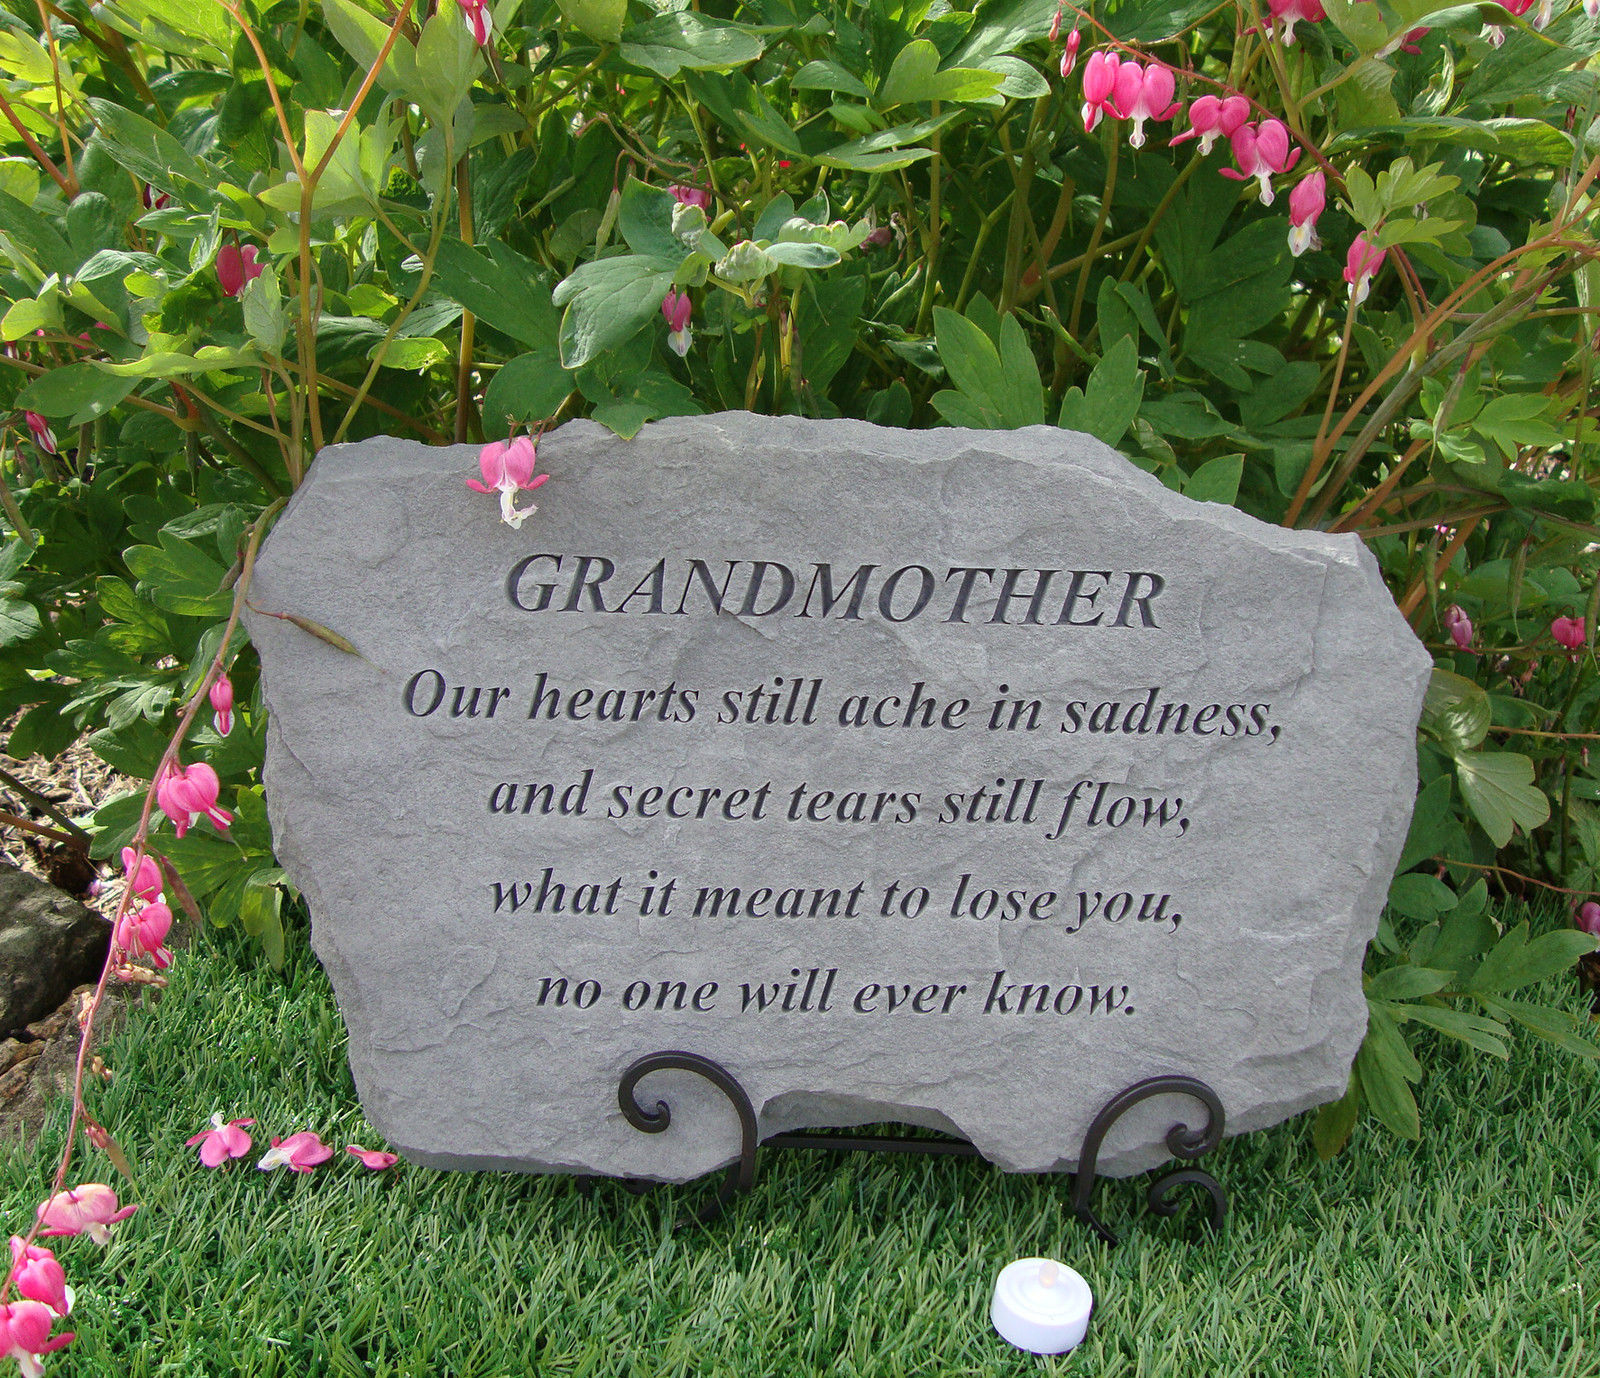 Sympathy Stones For The Garden Grandmother grandma memorial garden stone plaque grave marker grandmother grandma memorial garden stone plaque grave marker ornament workwithnaturefo